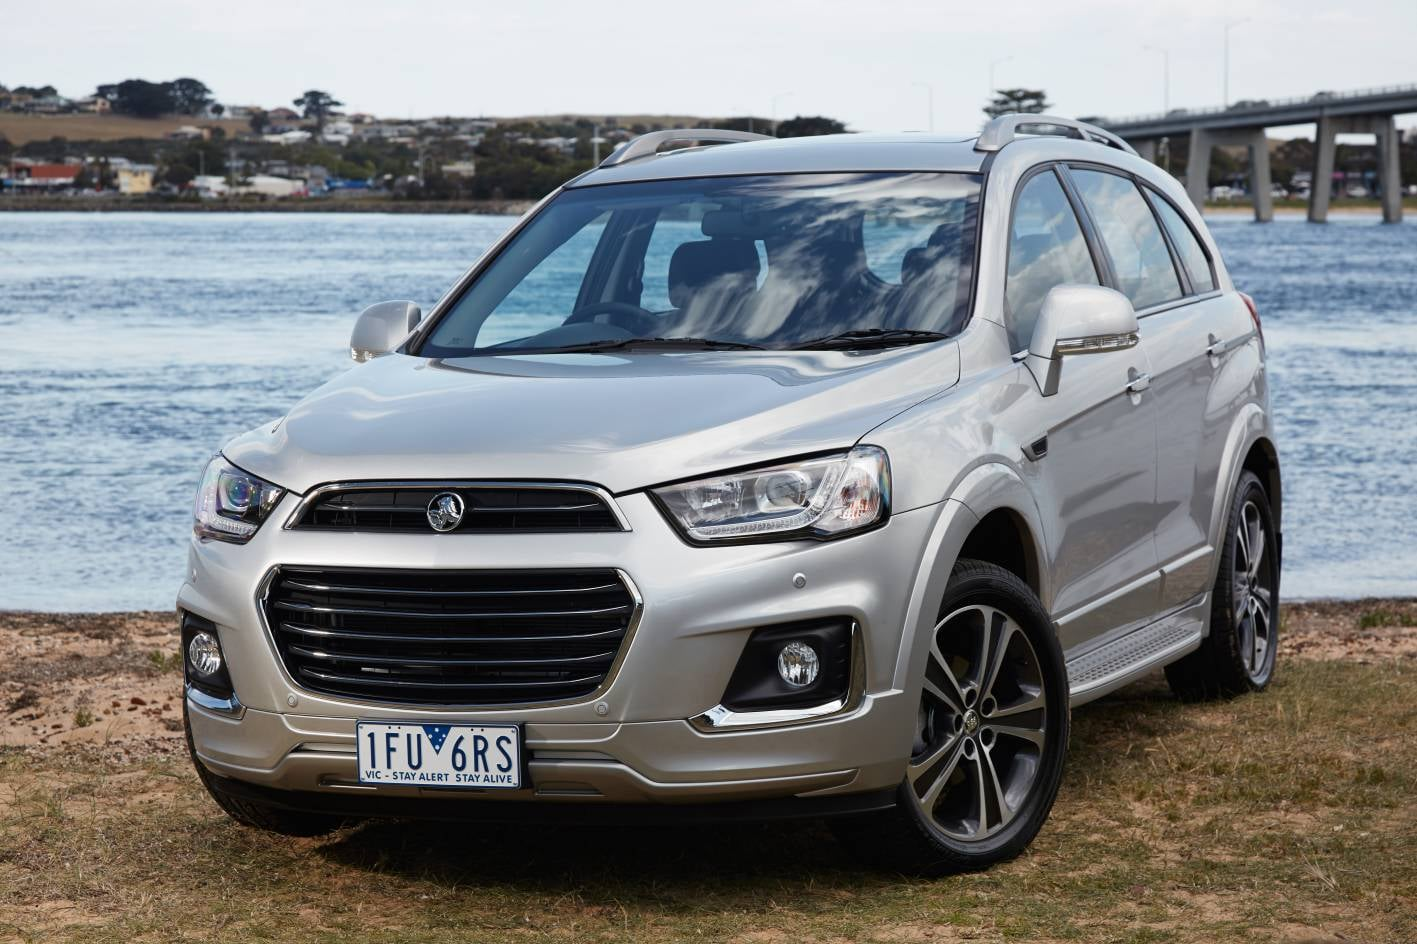 Holden Captiva - the quintessentially evil shape of Holdens to come. The price is right, but everything else is wrong - including the construction and fundamental R&D